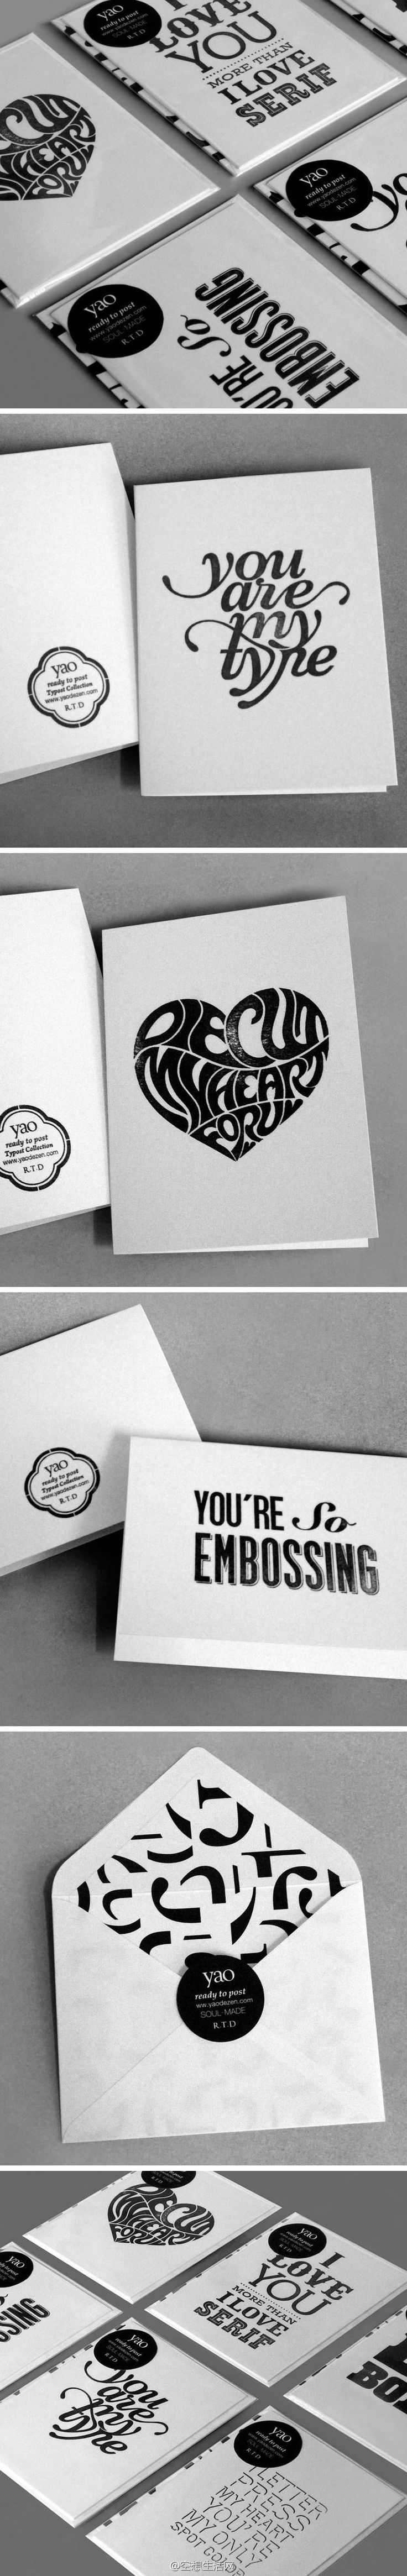 type valentines (har har) I love this...#layout #design #typography